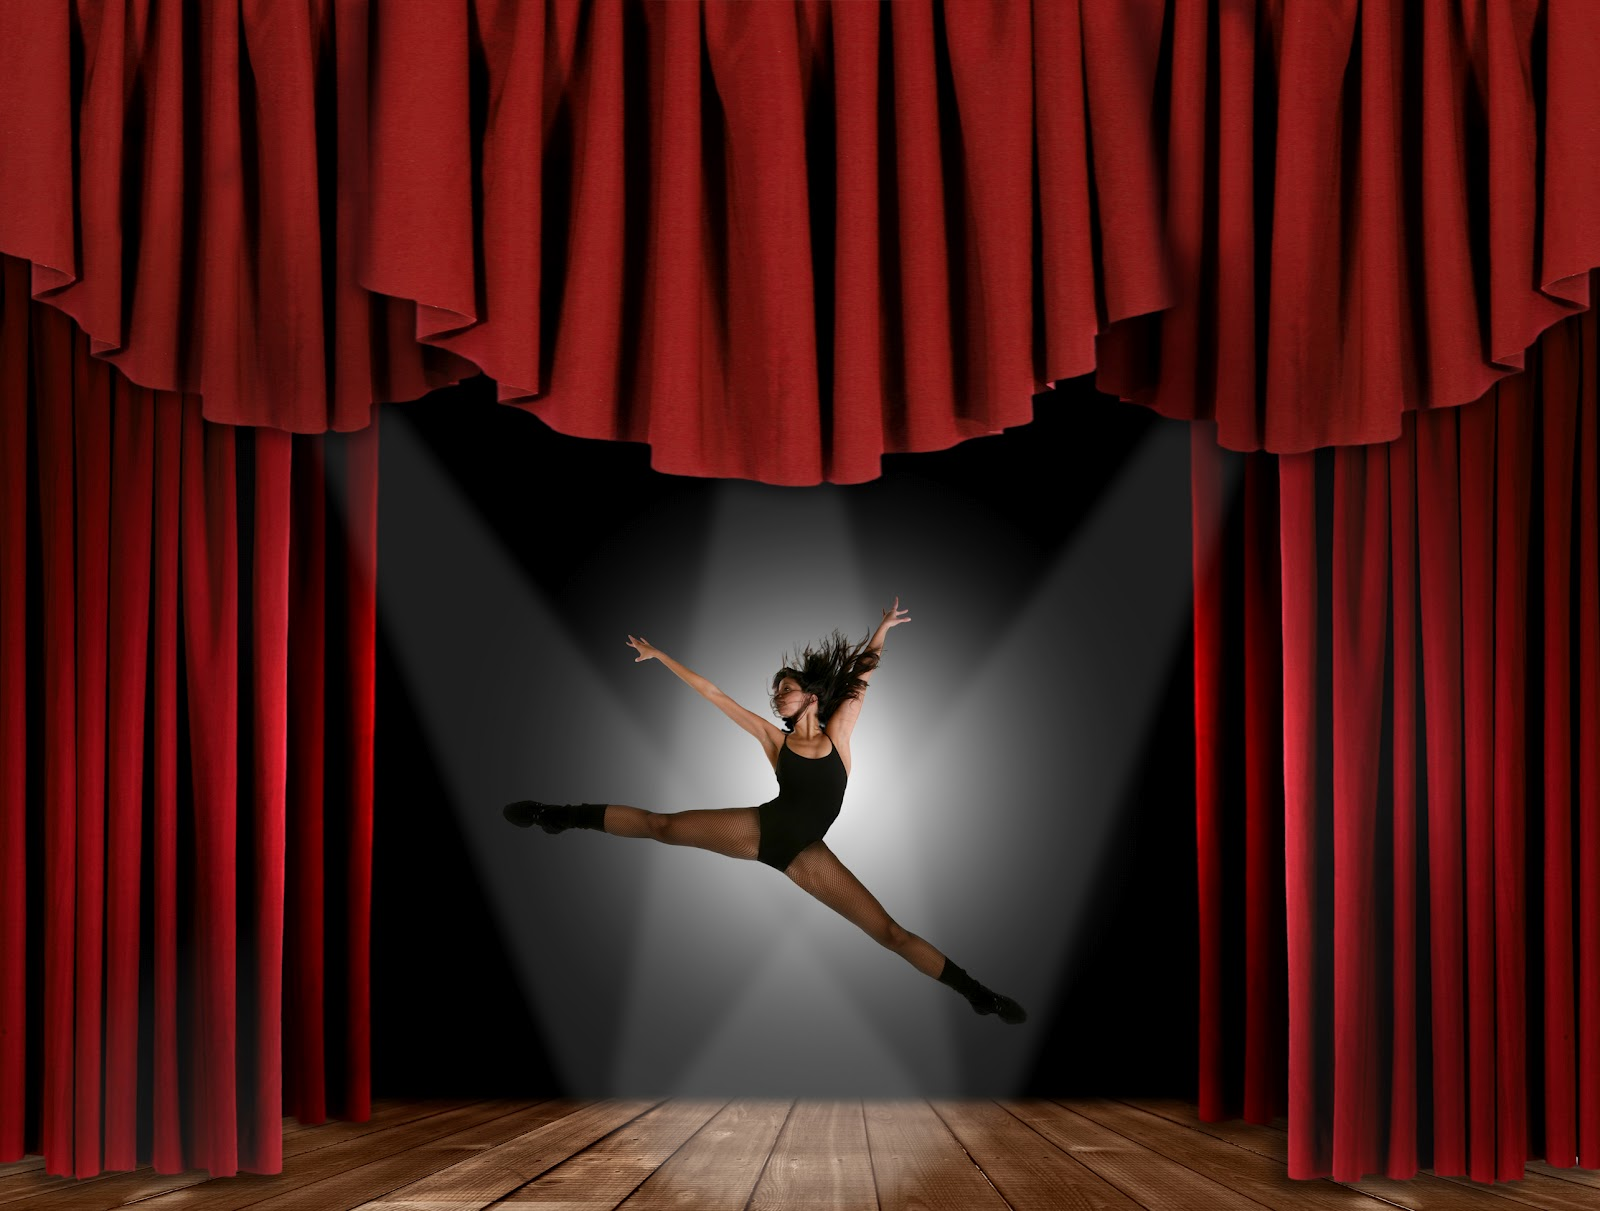 http://4.bp.blogspot.com/-rw18-TsQO1k/UDSQFzy0EmI/AAAAAAAAANY/AbgSO0F_54k/s1600/Dancing-On-Red-Stage-Curtain.jpg